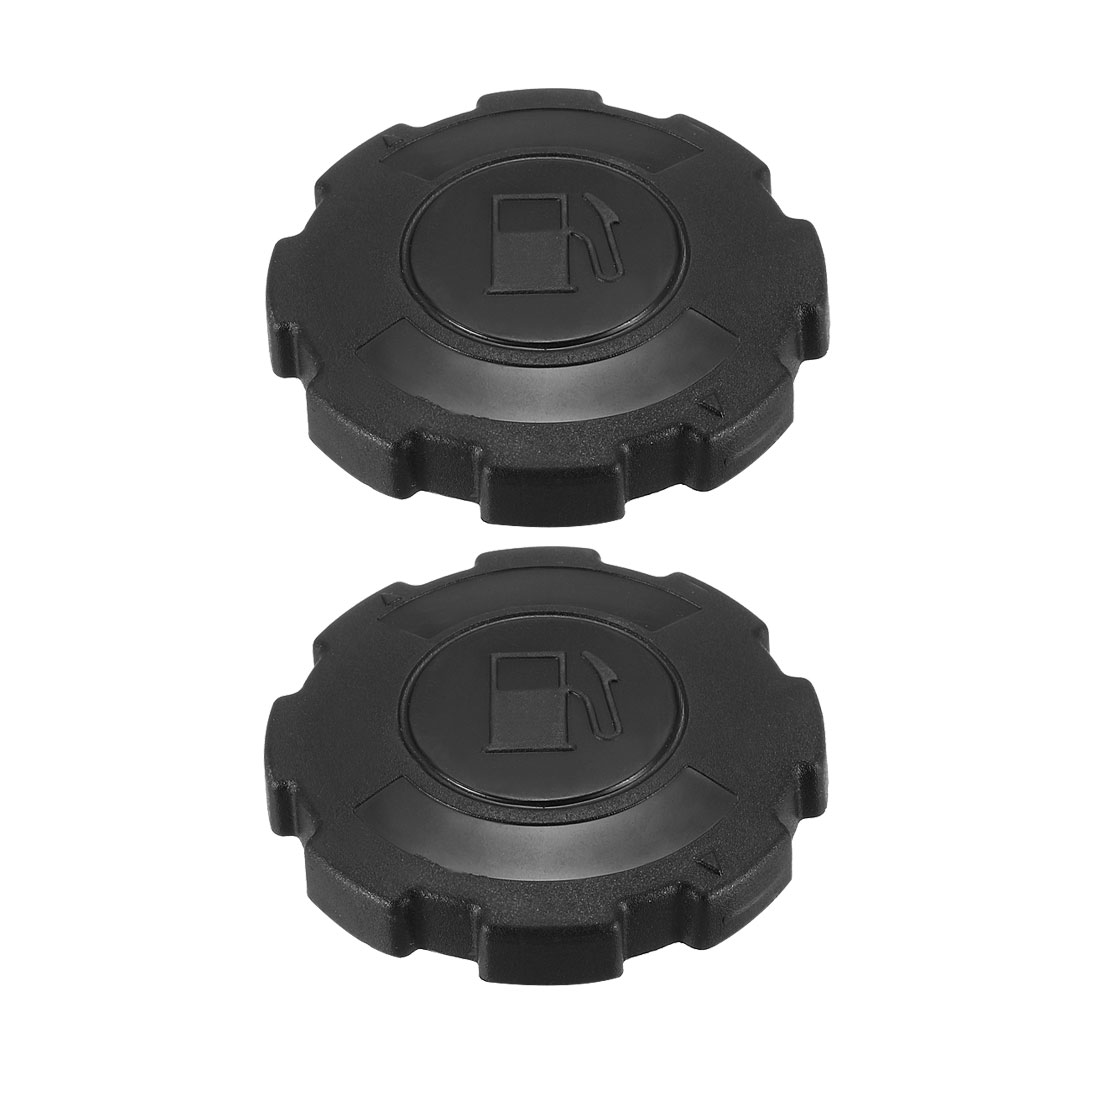 Fuel Tank Cap Fit for GX120 for 6.5HP for 11HP for 13HP Engine 2 Pcs